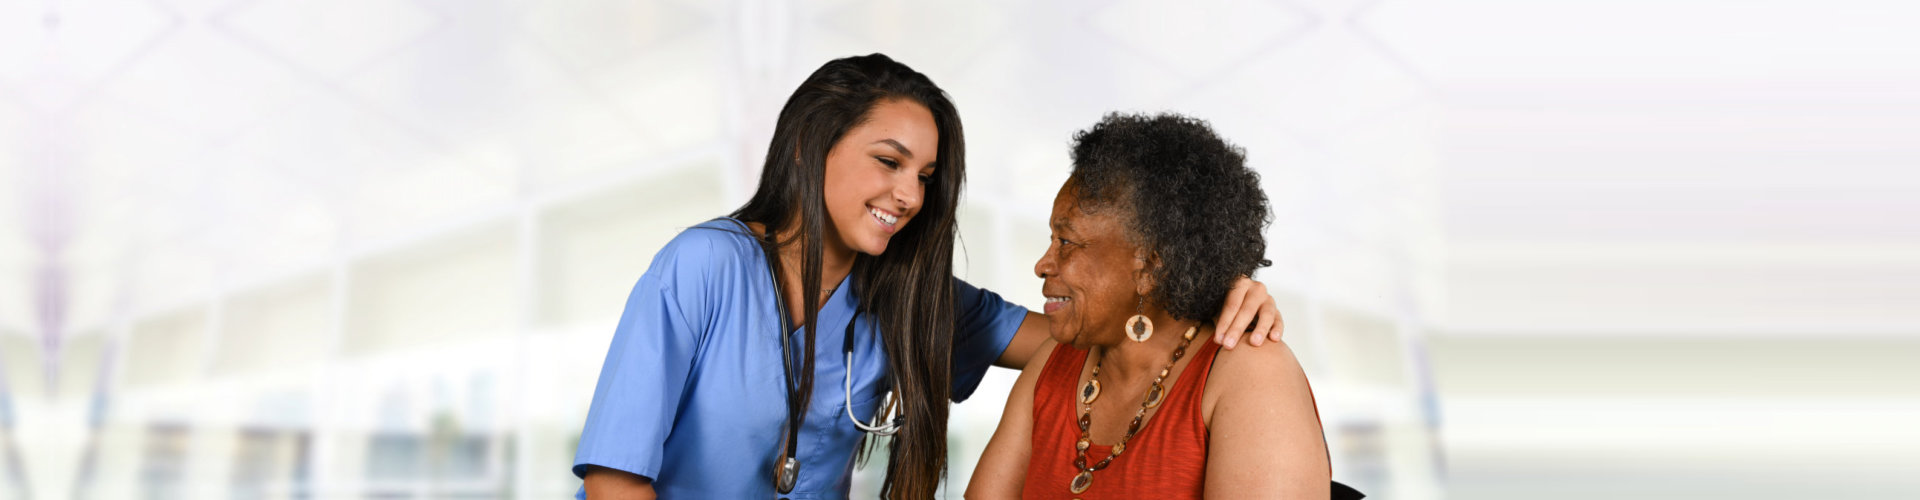 caregiver and elder woman looking at each other